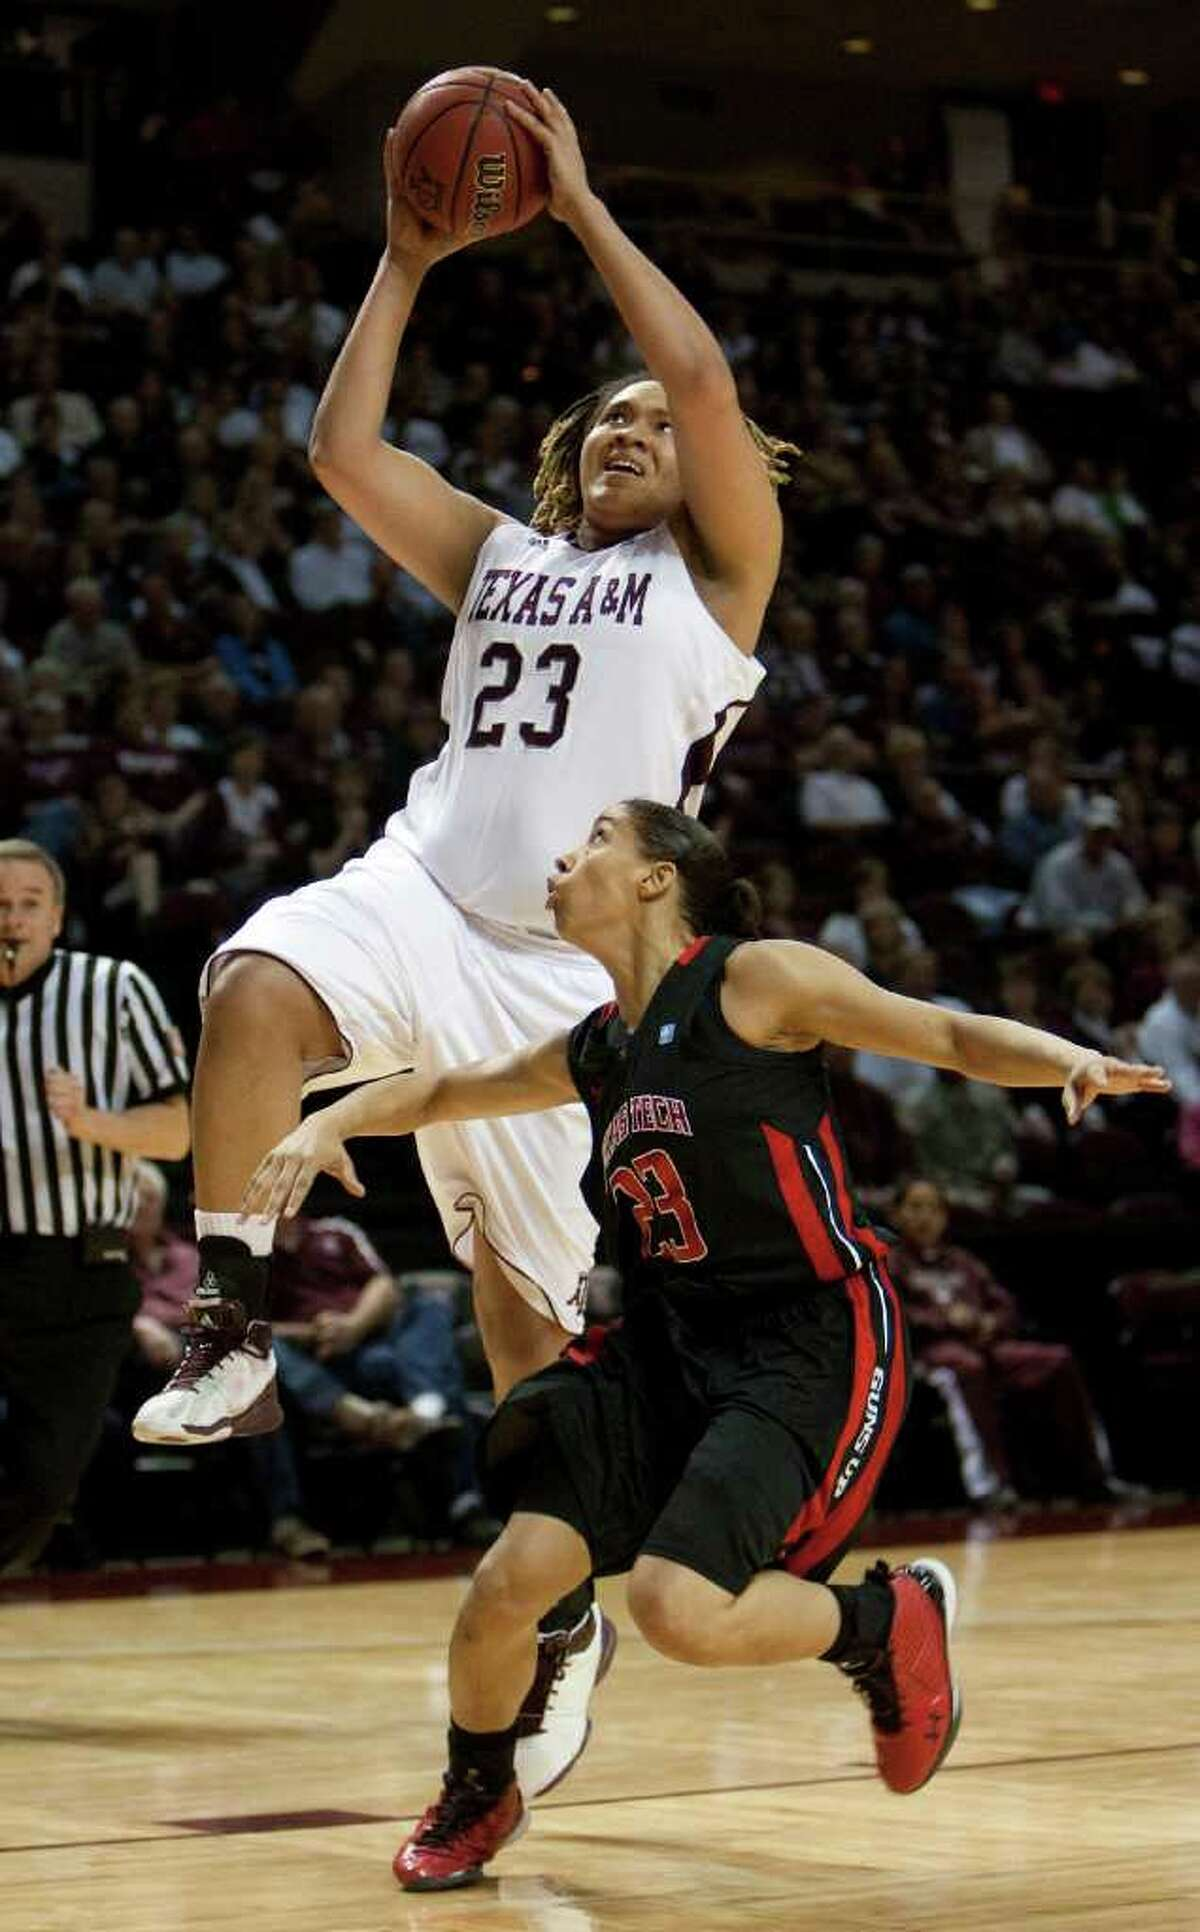 Texas A&M's Danielle Adams (23) goes to the basket over Texas Tech defender Monique Smalls (23) during the first half of an NCAA college basketball game Tuesday, Feb. 22, 2011, in College Station, Texas.